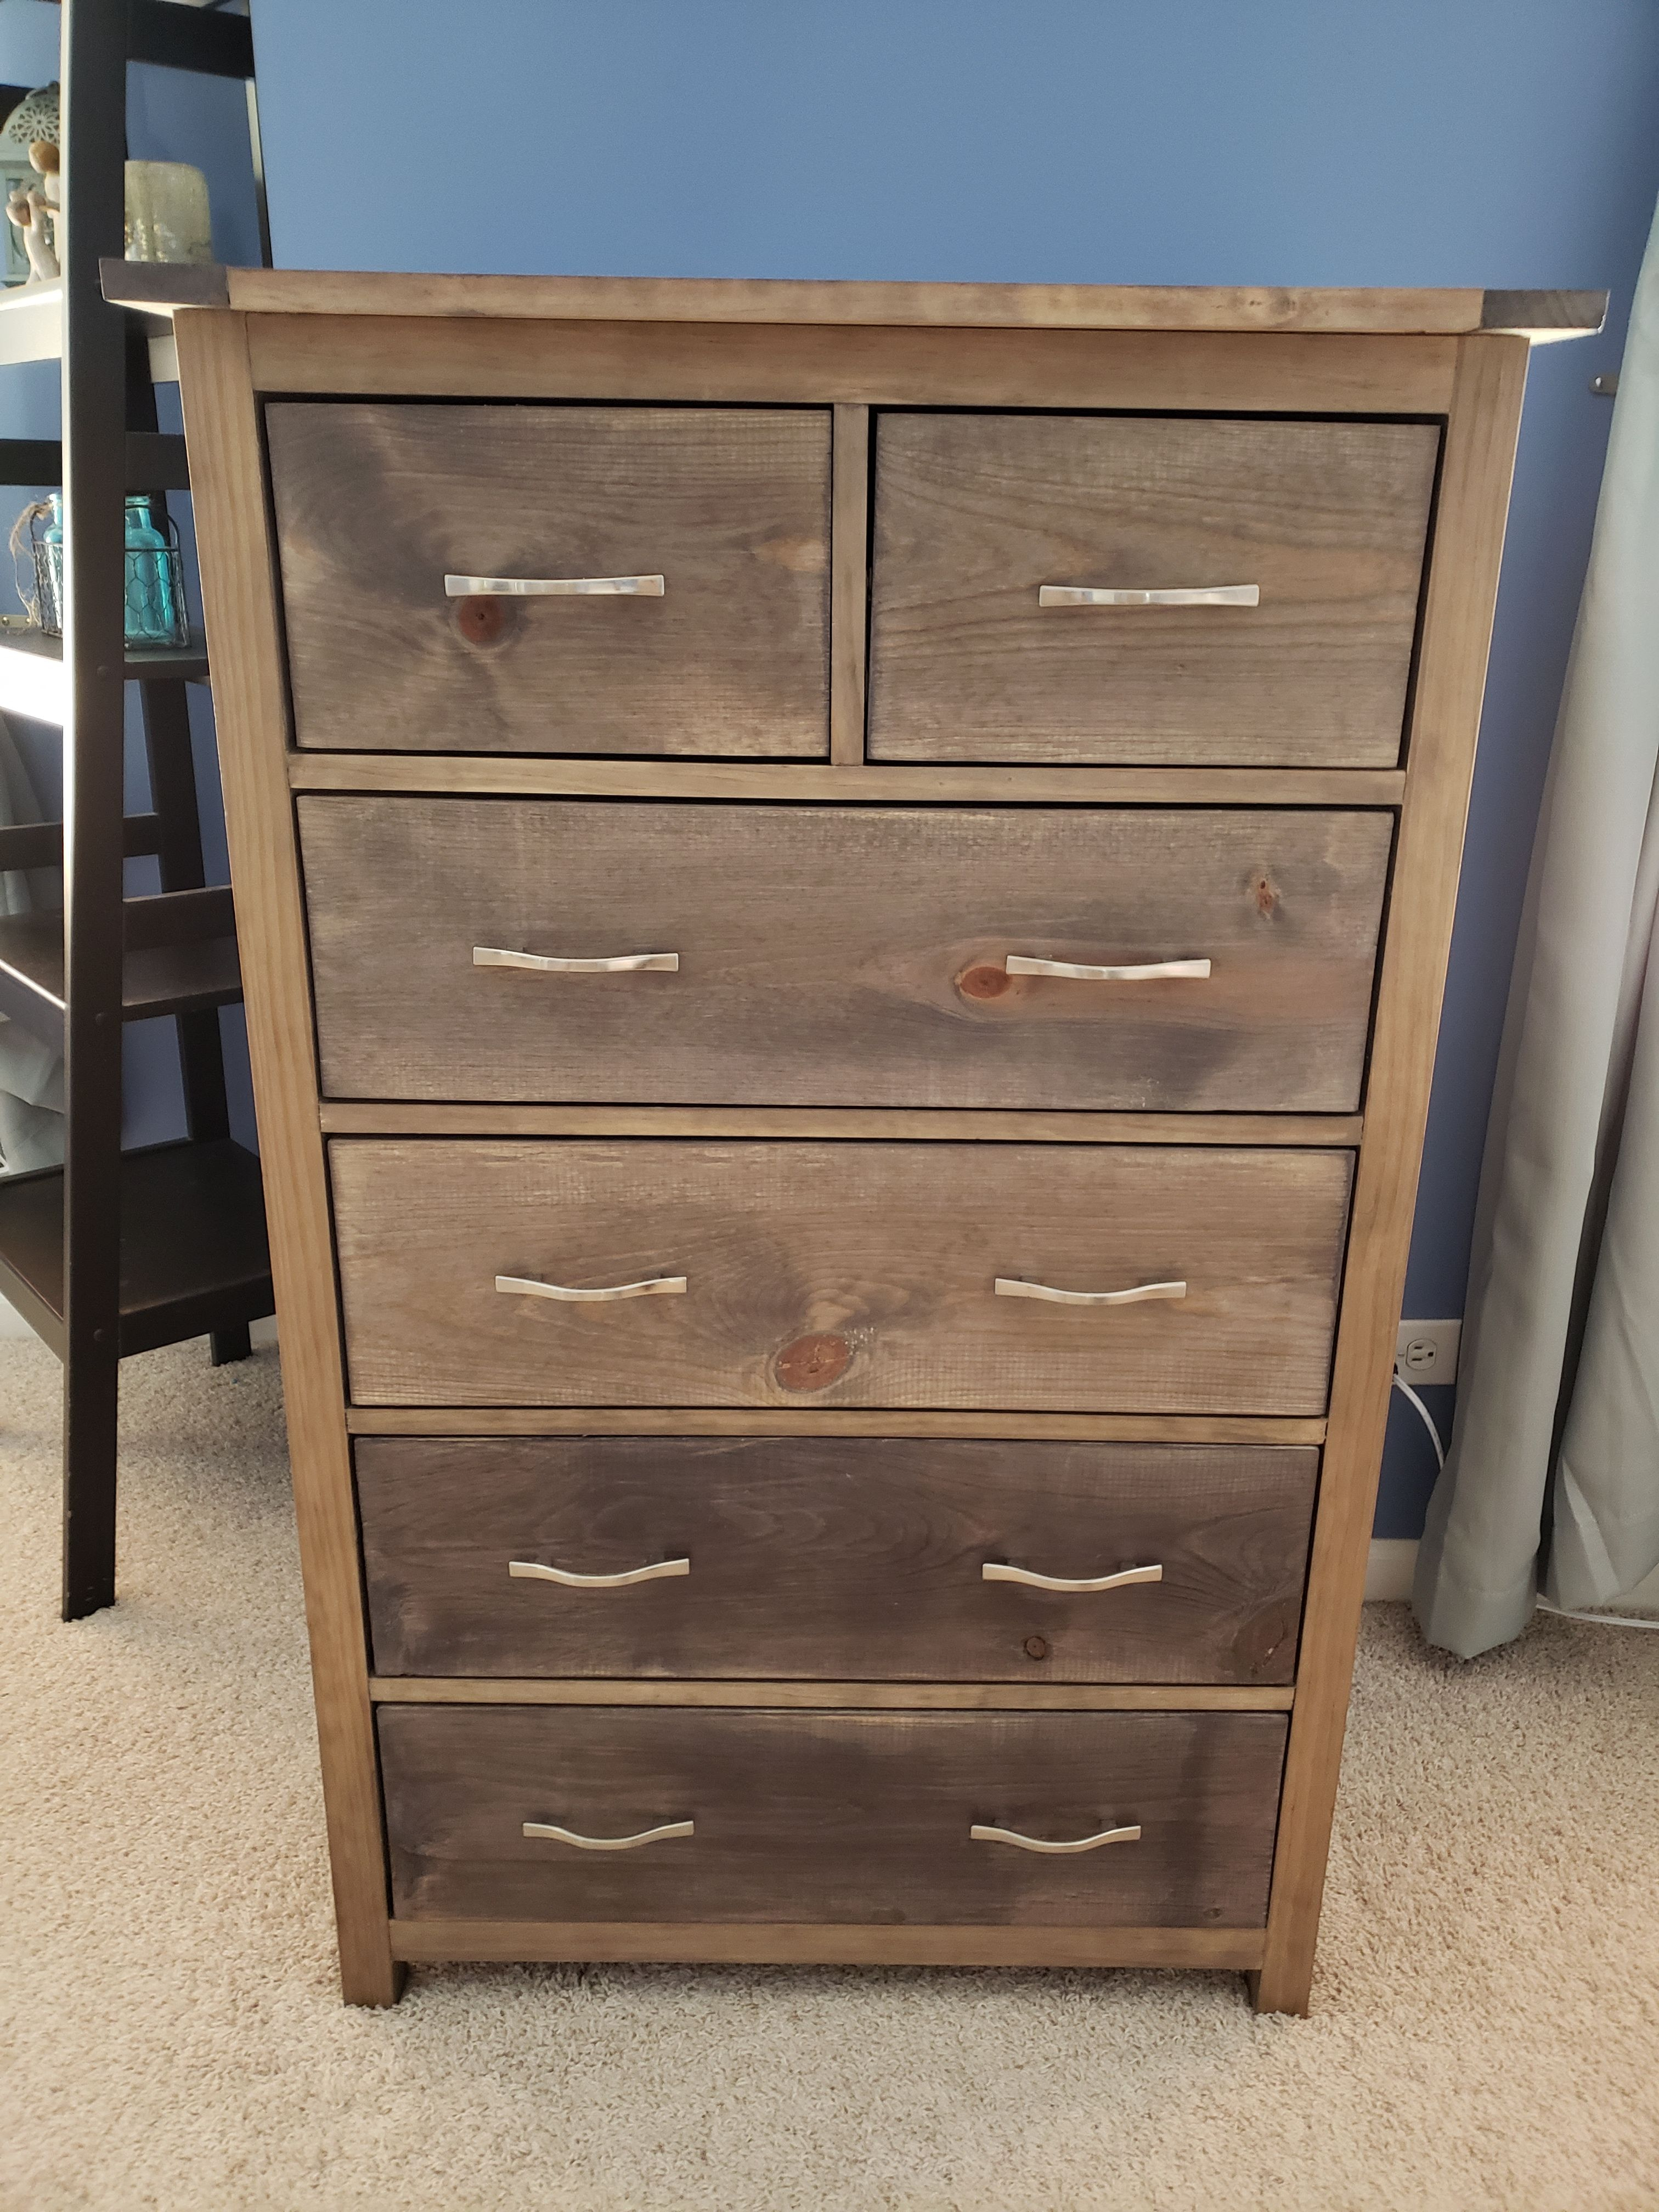 Ana White Tall Bedroom Dresser Diy Projects